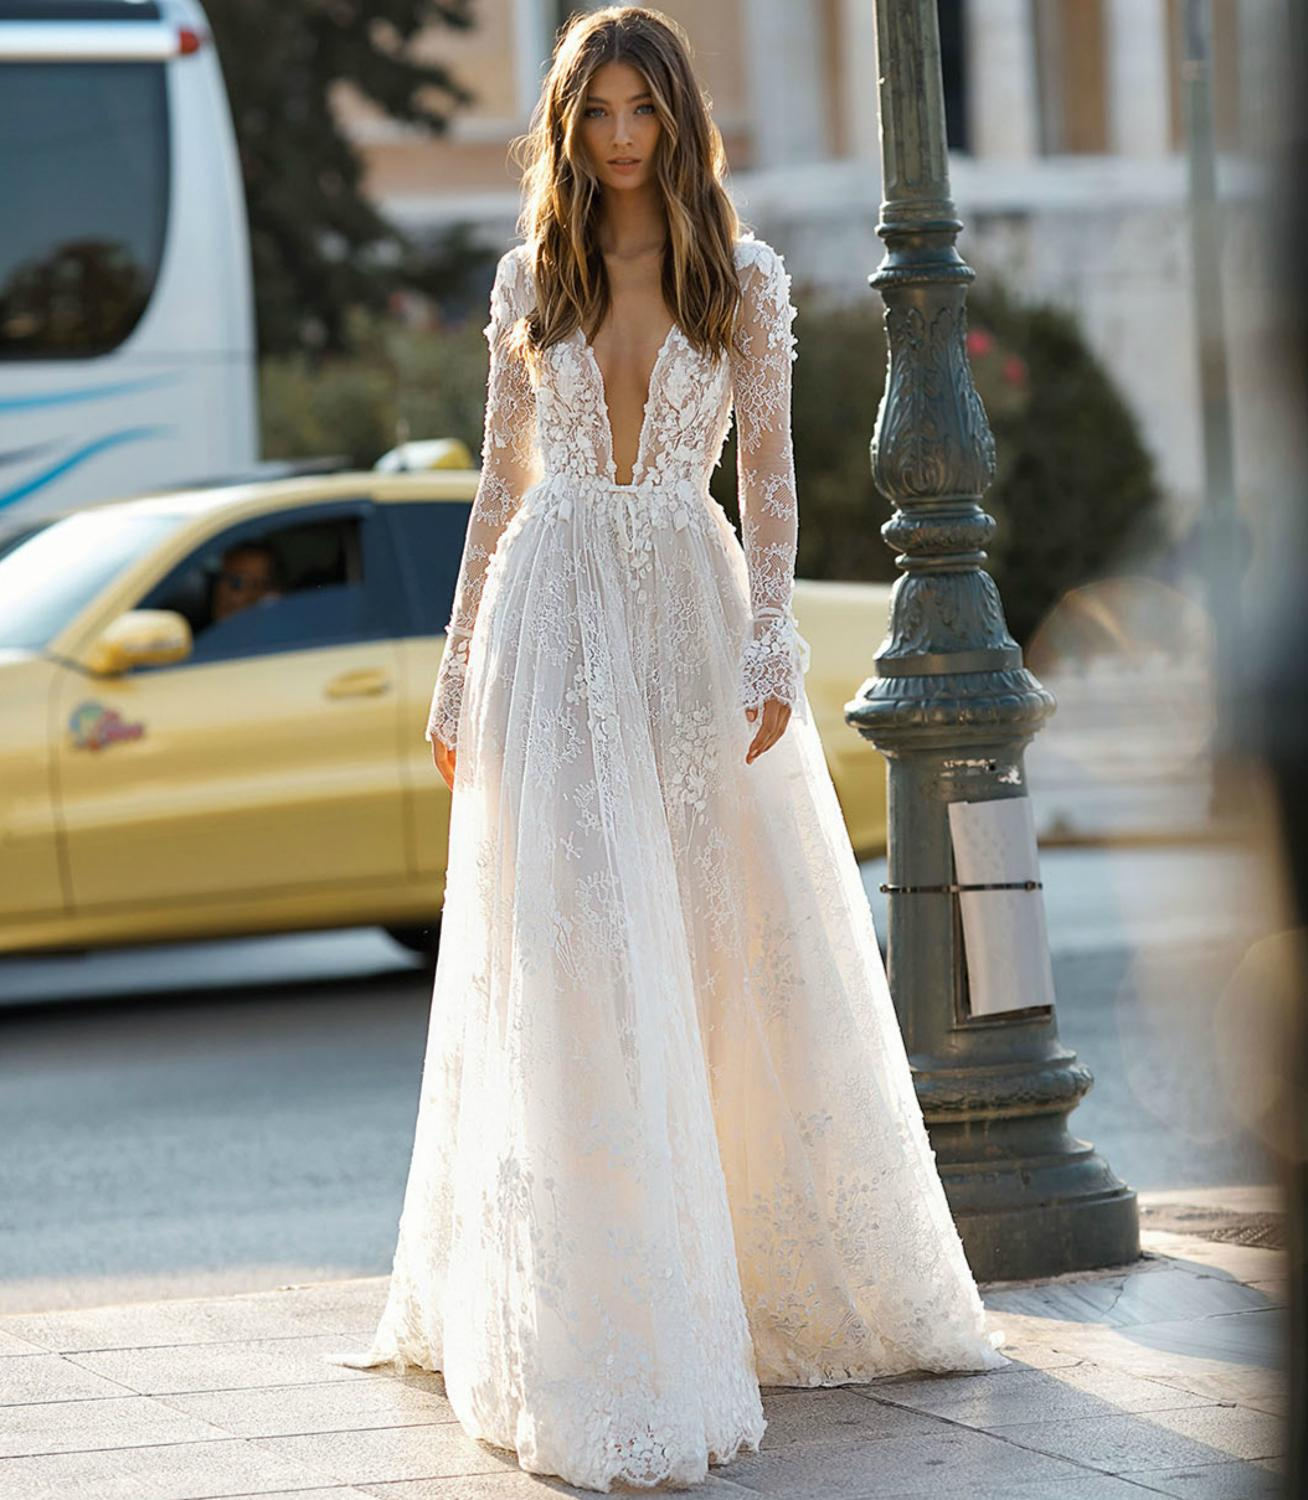 New Fabulous Long Sleeves Wedding Dress 2021 V-neck Court Train Appliques Lace Tulle A-Line Bride Gowns Vestidos